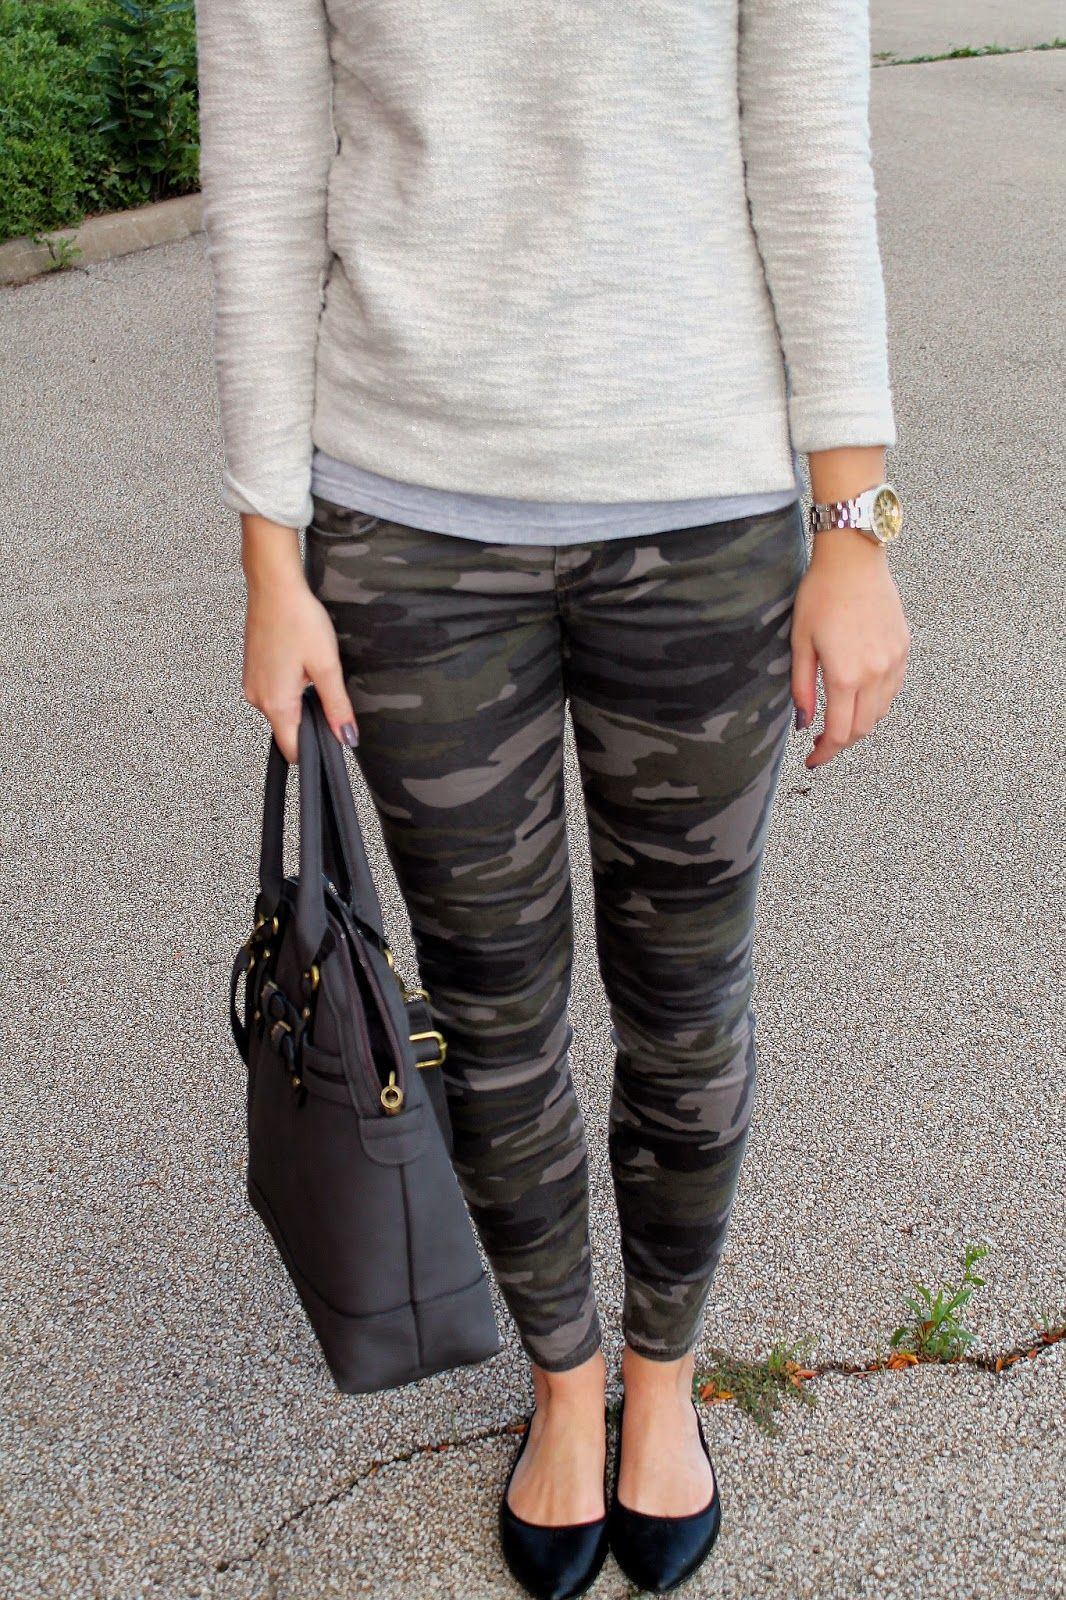 i like the combo of CAMO JEANS + SWEATSHIRT and flats. More soft and hard play. Don't like the accessories